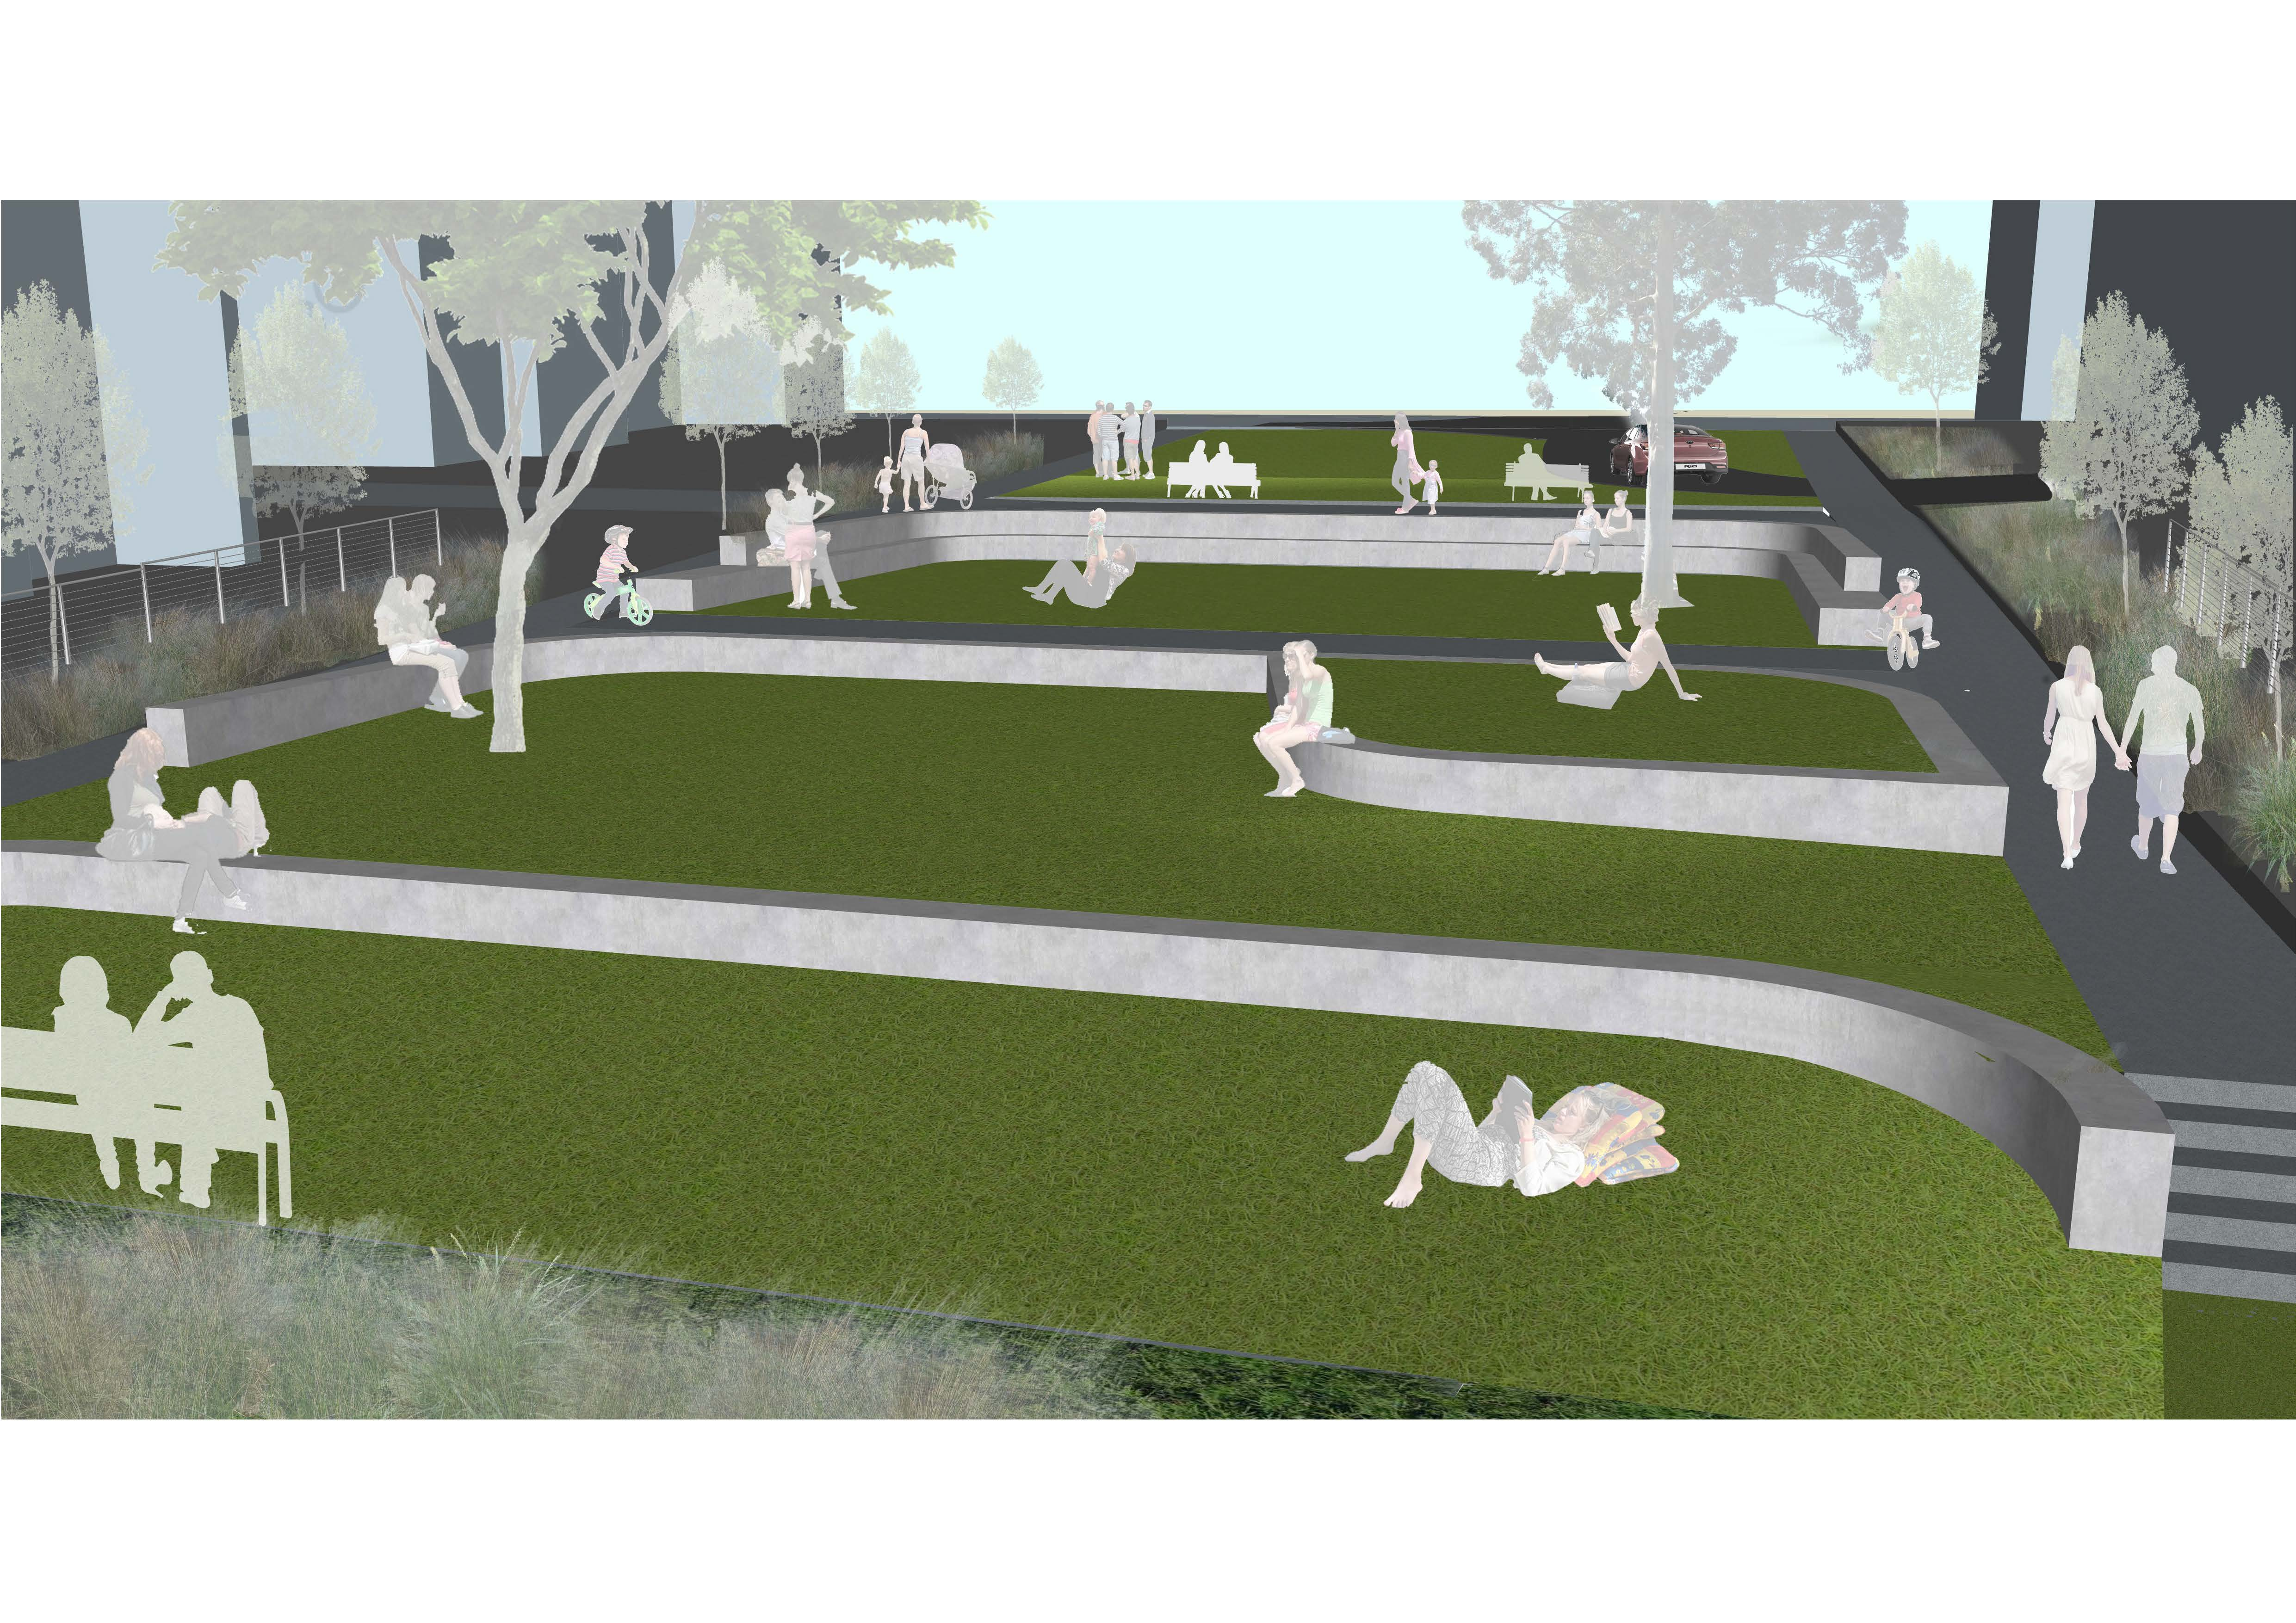 Second example of park concept design